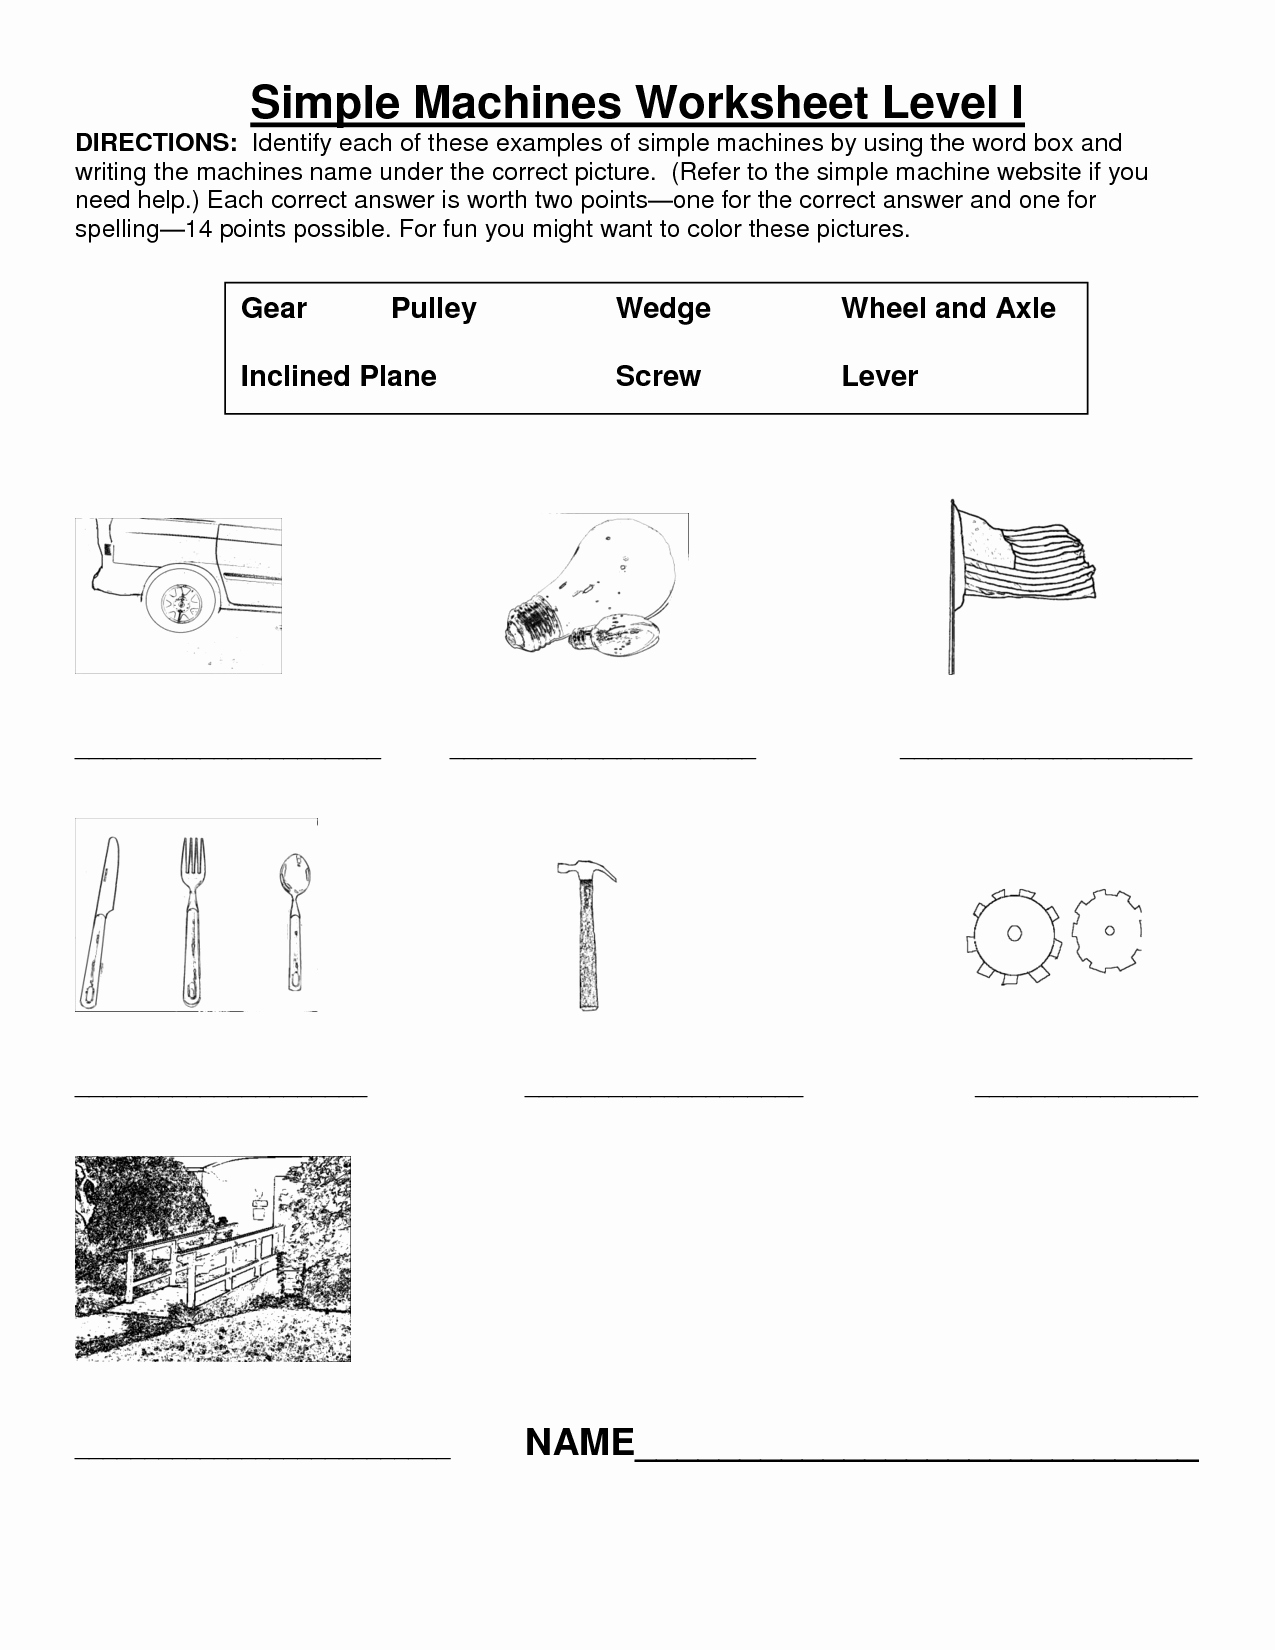 Sequencing Worksheets 4th Grade Lovely Story Sequencing Worksheet for 4th Grade